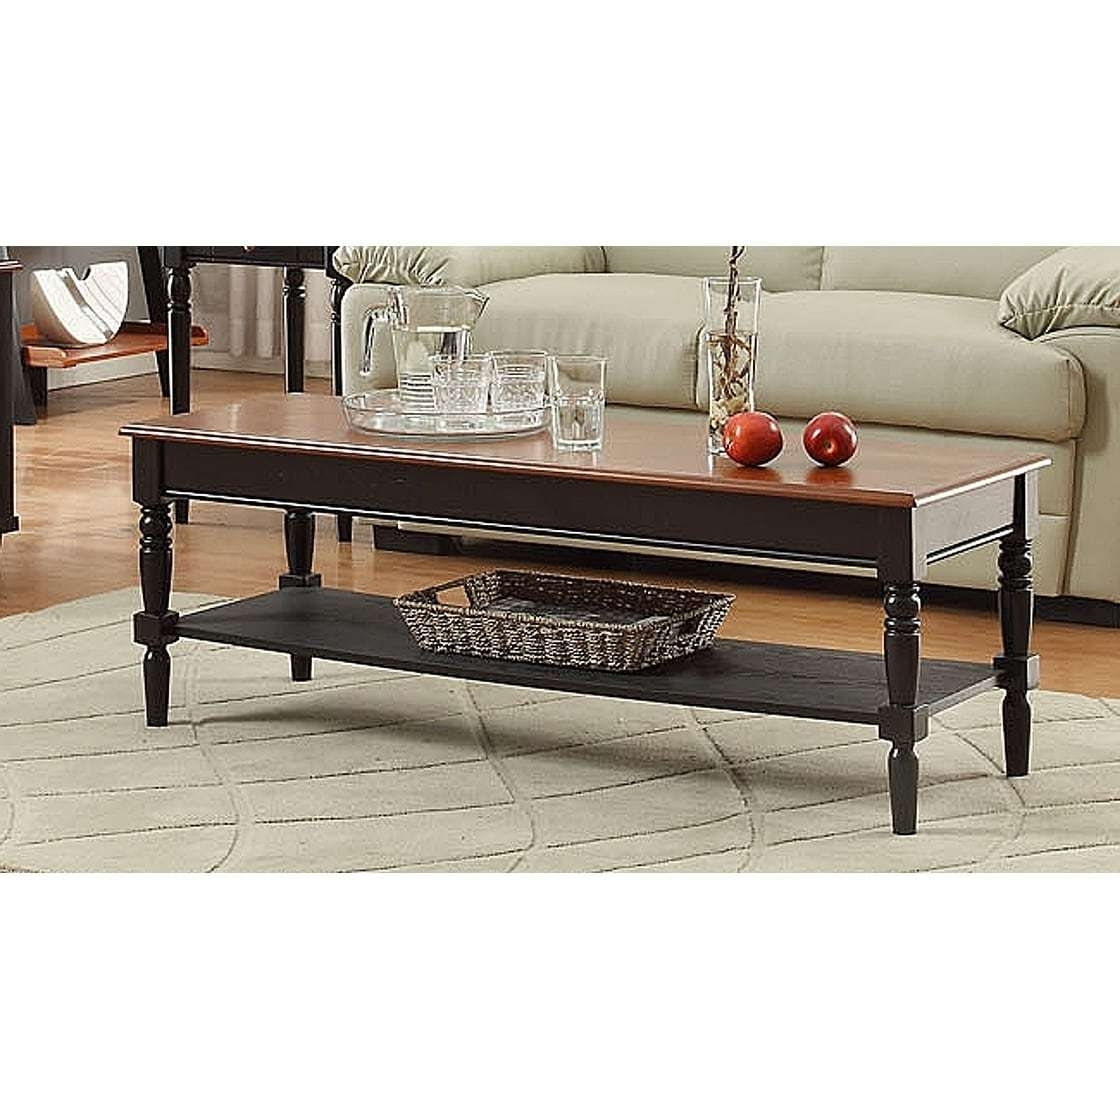 Well Known French Country Coffee Tables Within Convenience Concepts French Country Coffee Table – Free Shipping (View 13 of 20)